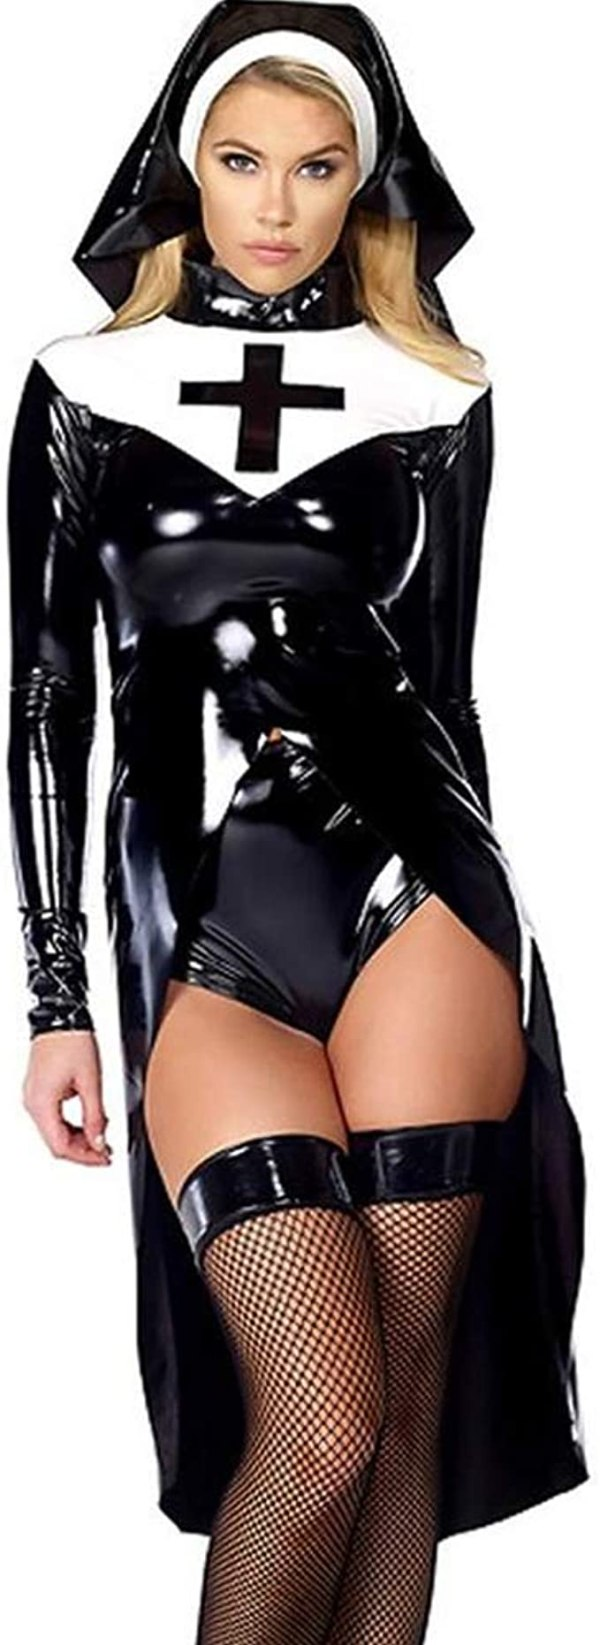 Xinbeauty Womens Saintlike Seductress Costume Sexy Nun Costume Faux Leather Vinyl Halloween Costume Wetlook Cosplay Costume Fancy Dress 1